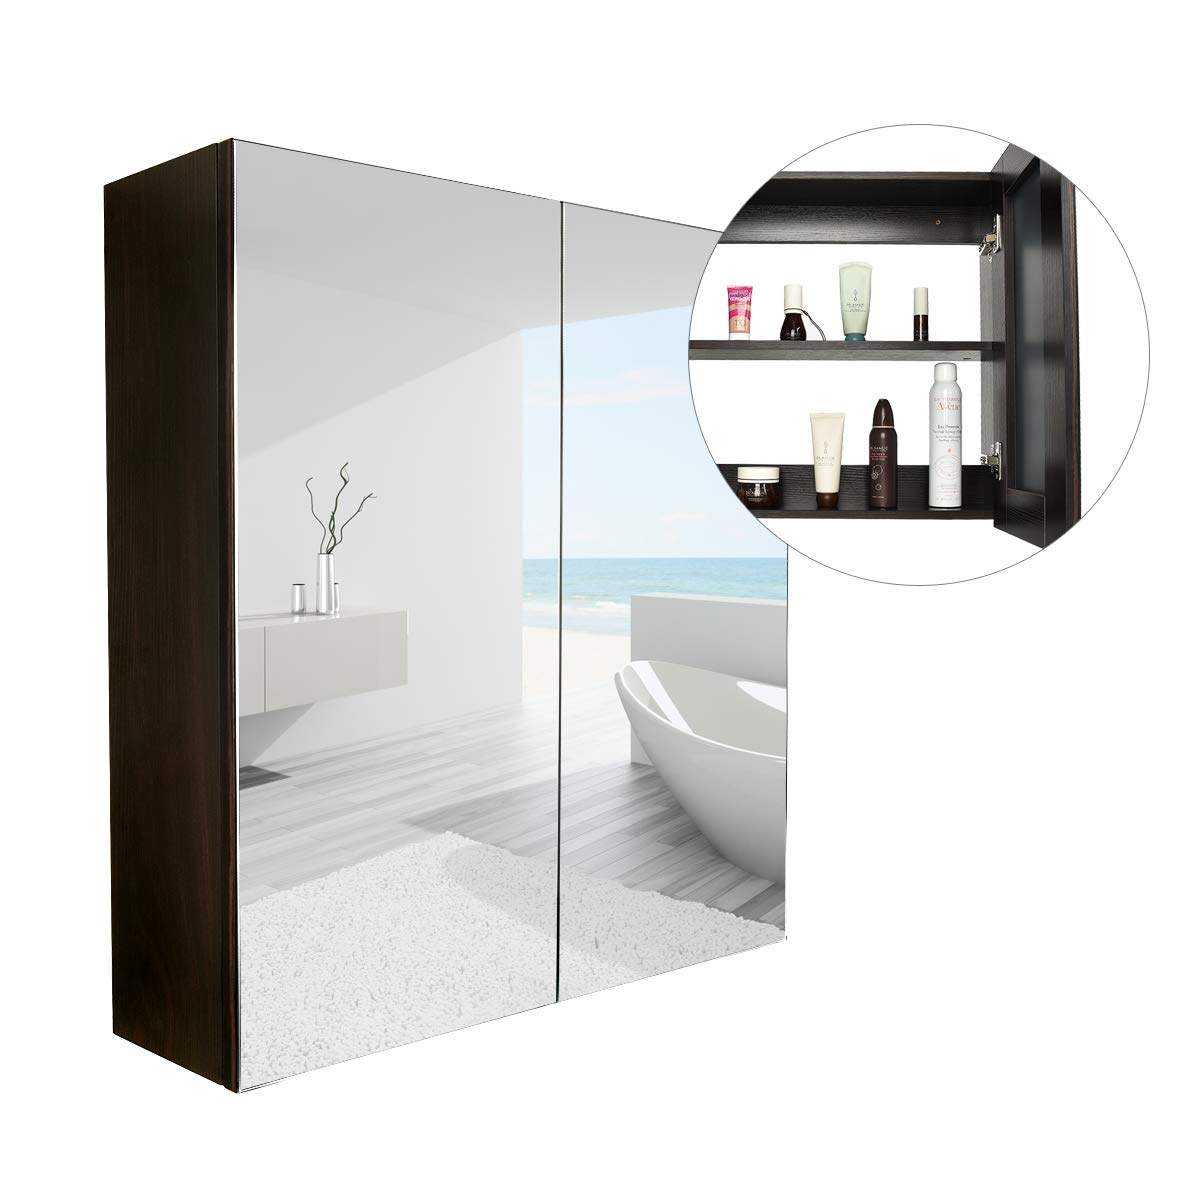 Elecwish 24'' Wide Wall Mount Mirrored Bathroom Medicine Cabinet Storage 2 Mirror Door (23.6'' 23.6'' 6.3'')